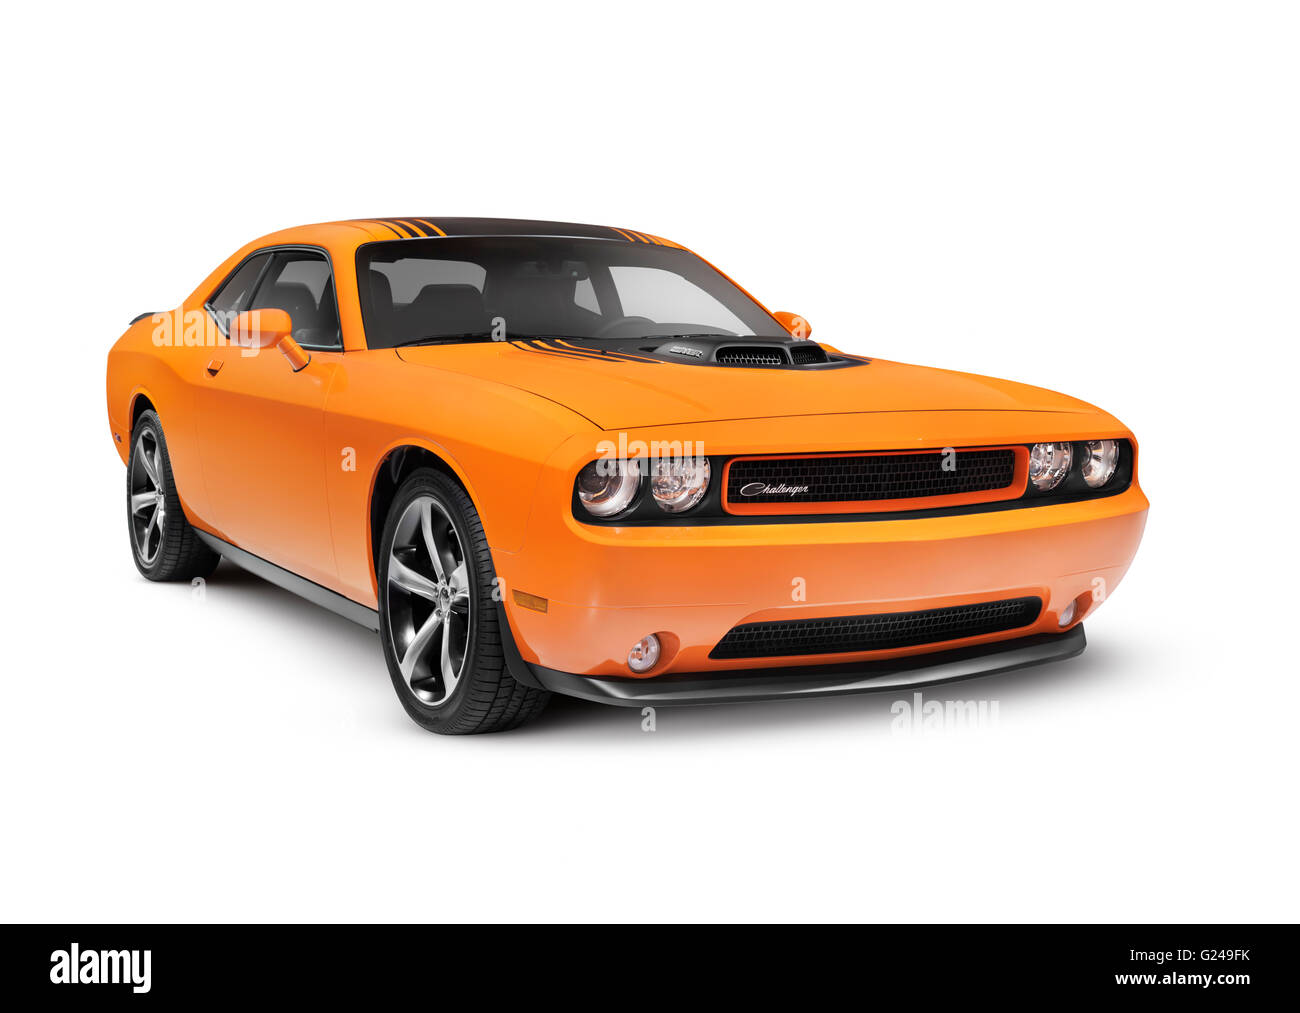 Orange 2014 Dodge Challenger muscle car - Stock Image